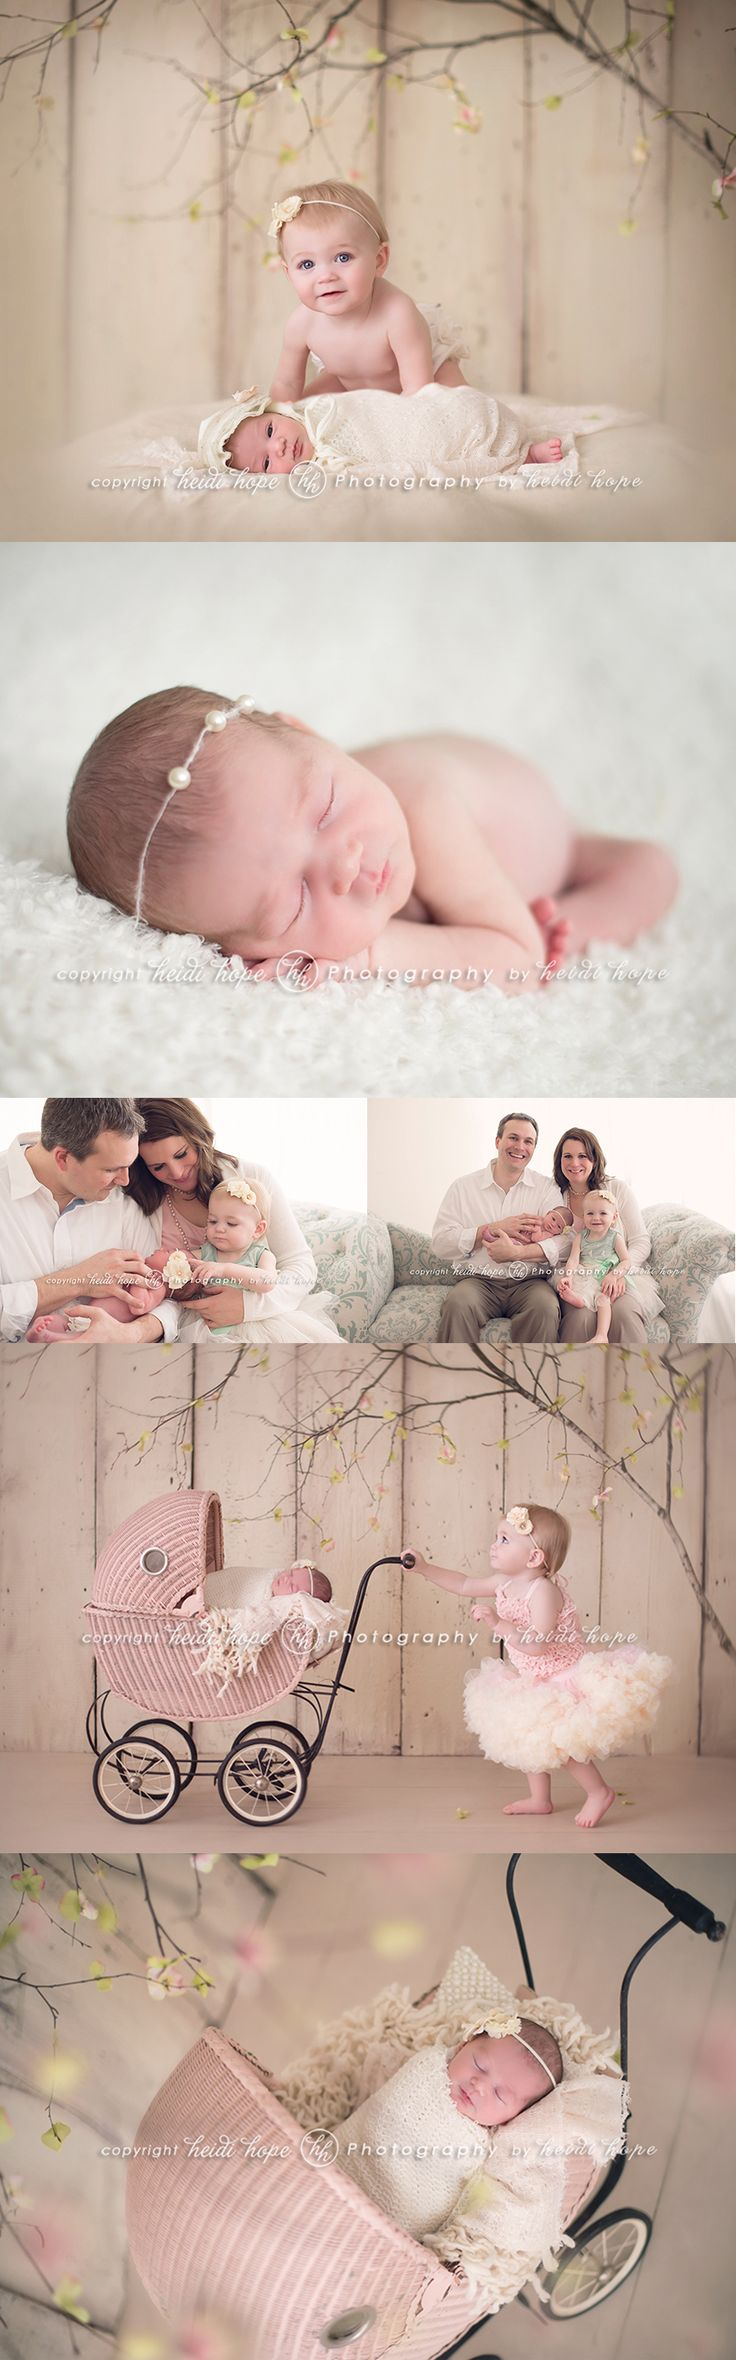 Newborn Baby | Heidi Hope Photography | Photo Session Ideas | Birth Announcement | Props | Prop | Sisters | Family